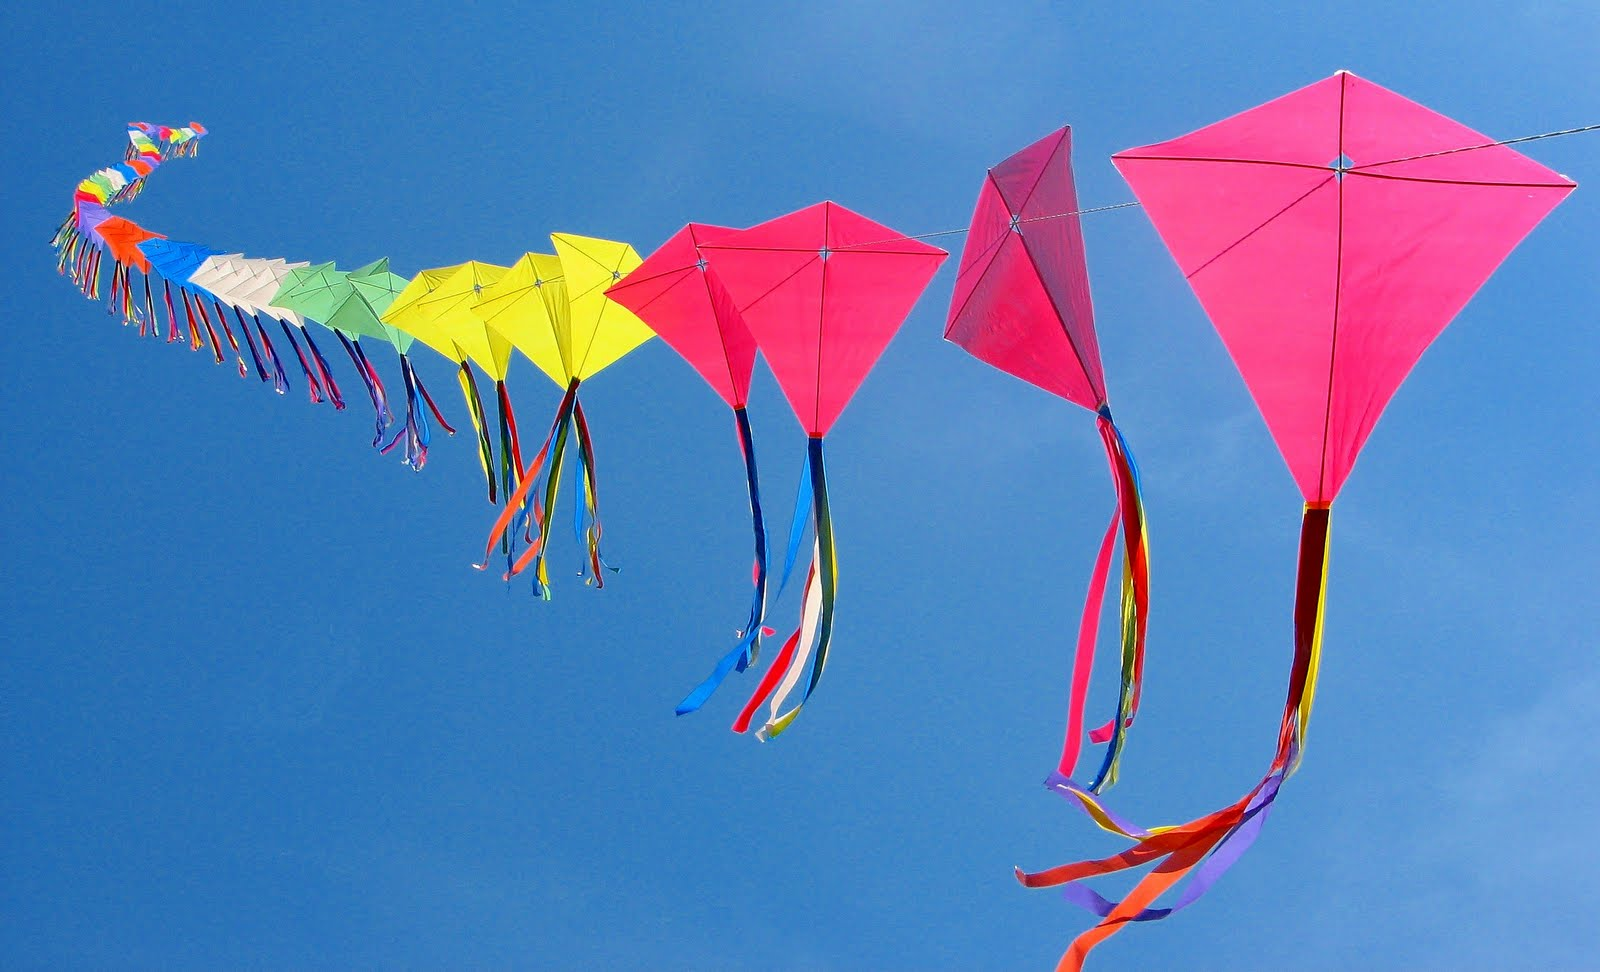 Makar Sankranti Colorful Kites